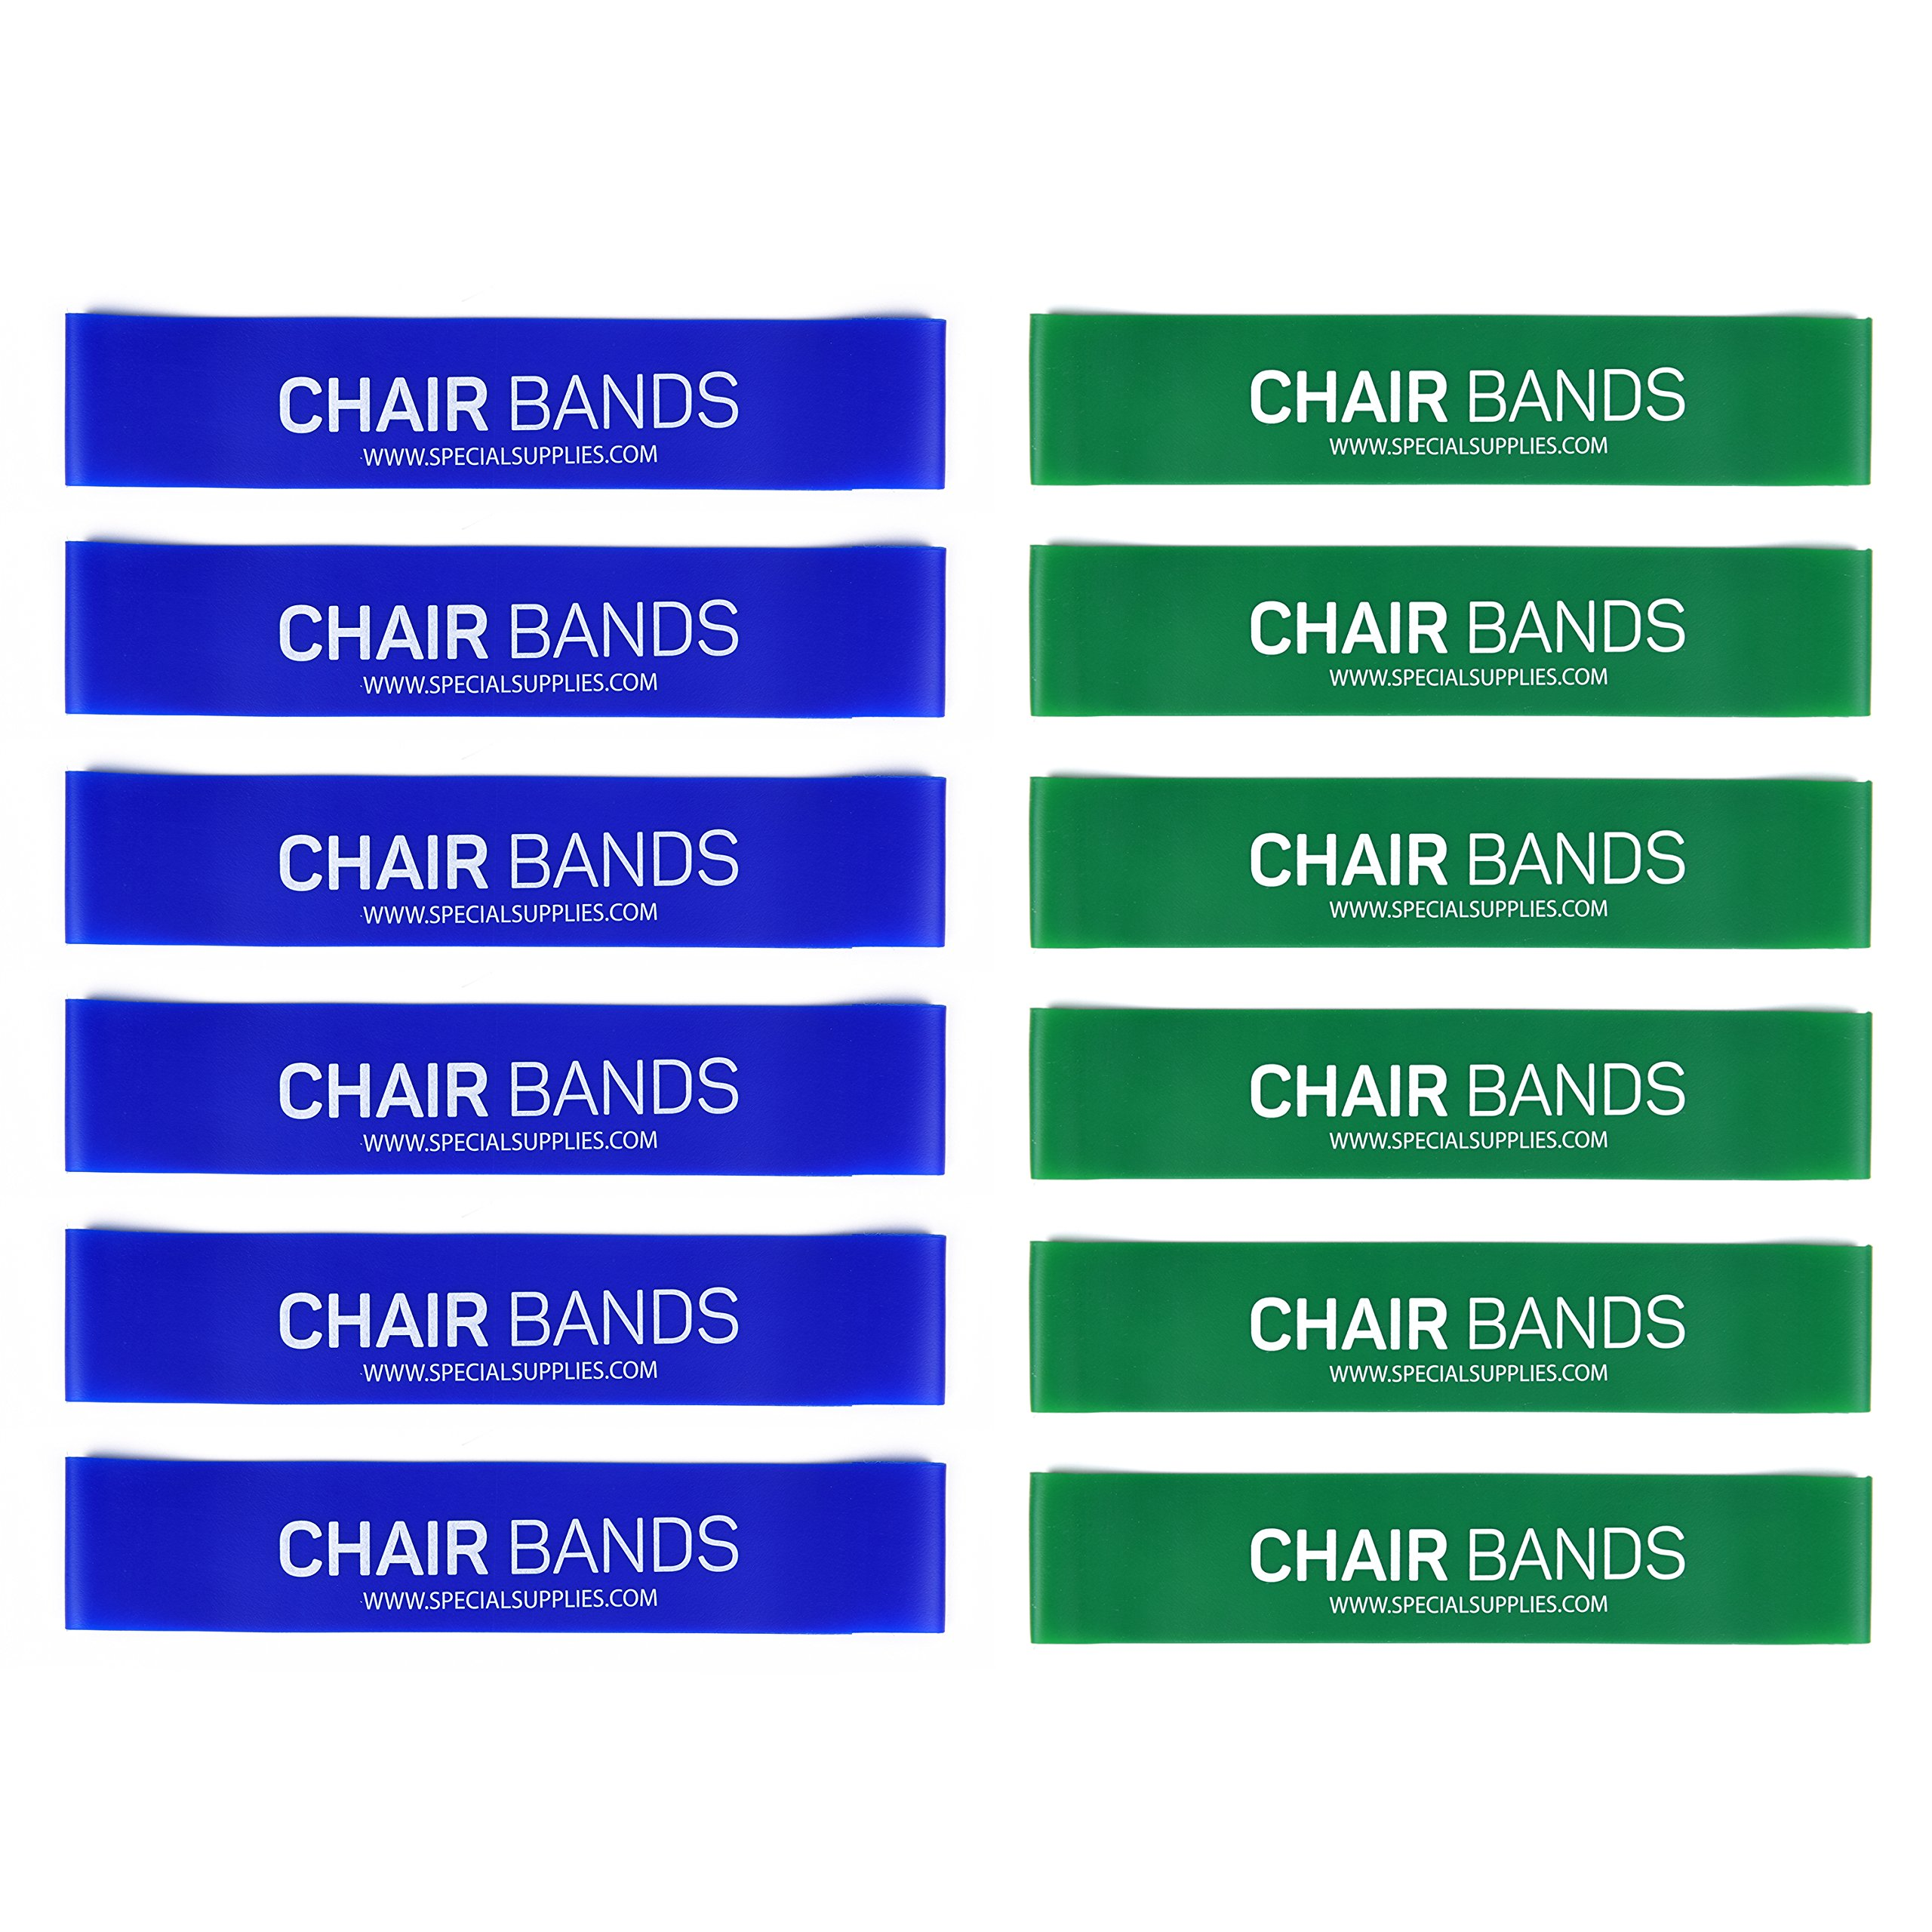 Special Supplies Kid's Rubber Bouncy Chair Bands (12-Pack) Promotes Calming Focus, Fidget & Stress Relief | Supports Sensory Needs for ADHD, ADD, SPD, Autism | Fits Classroom Desks by Special Supplies